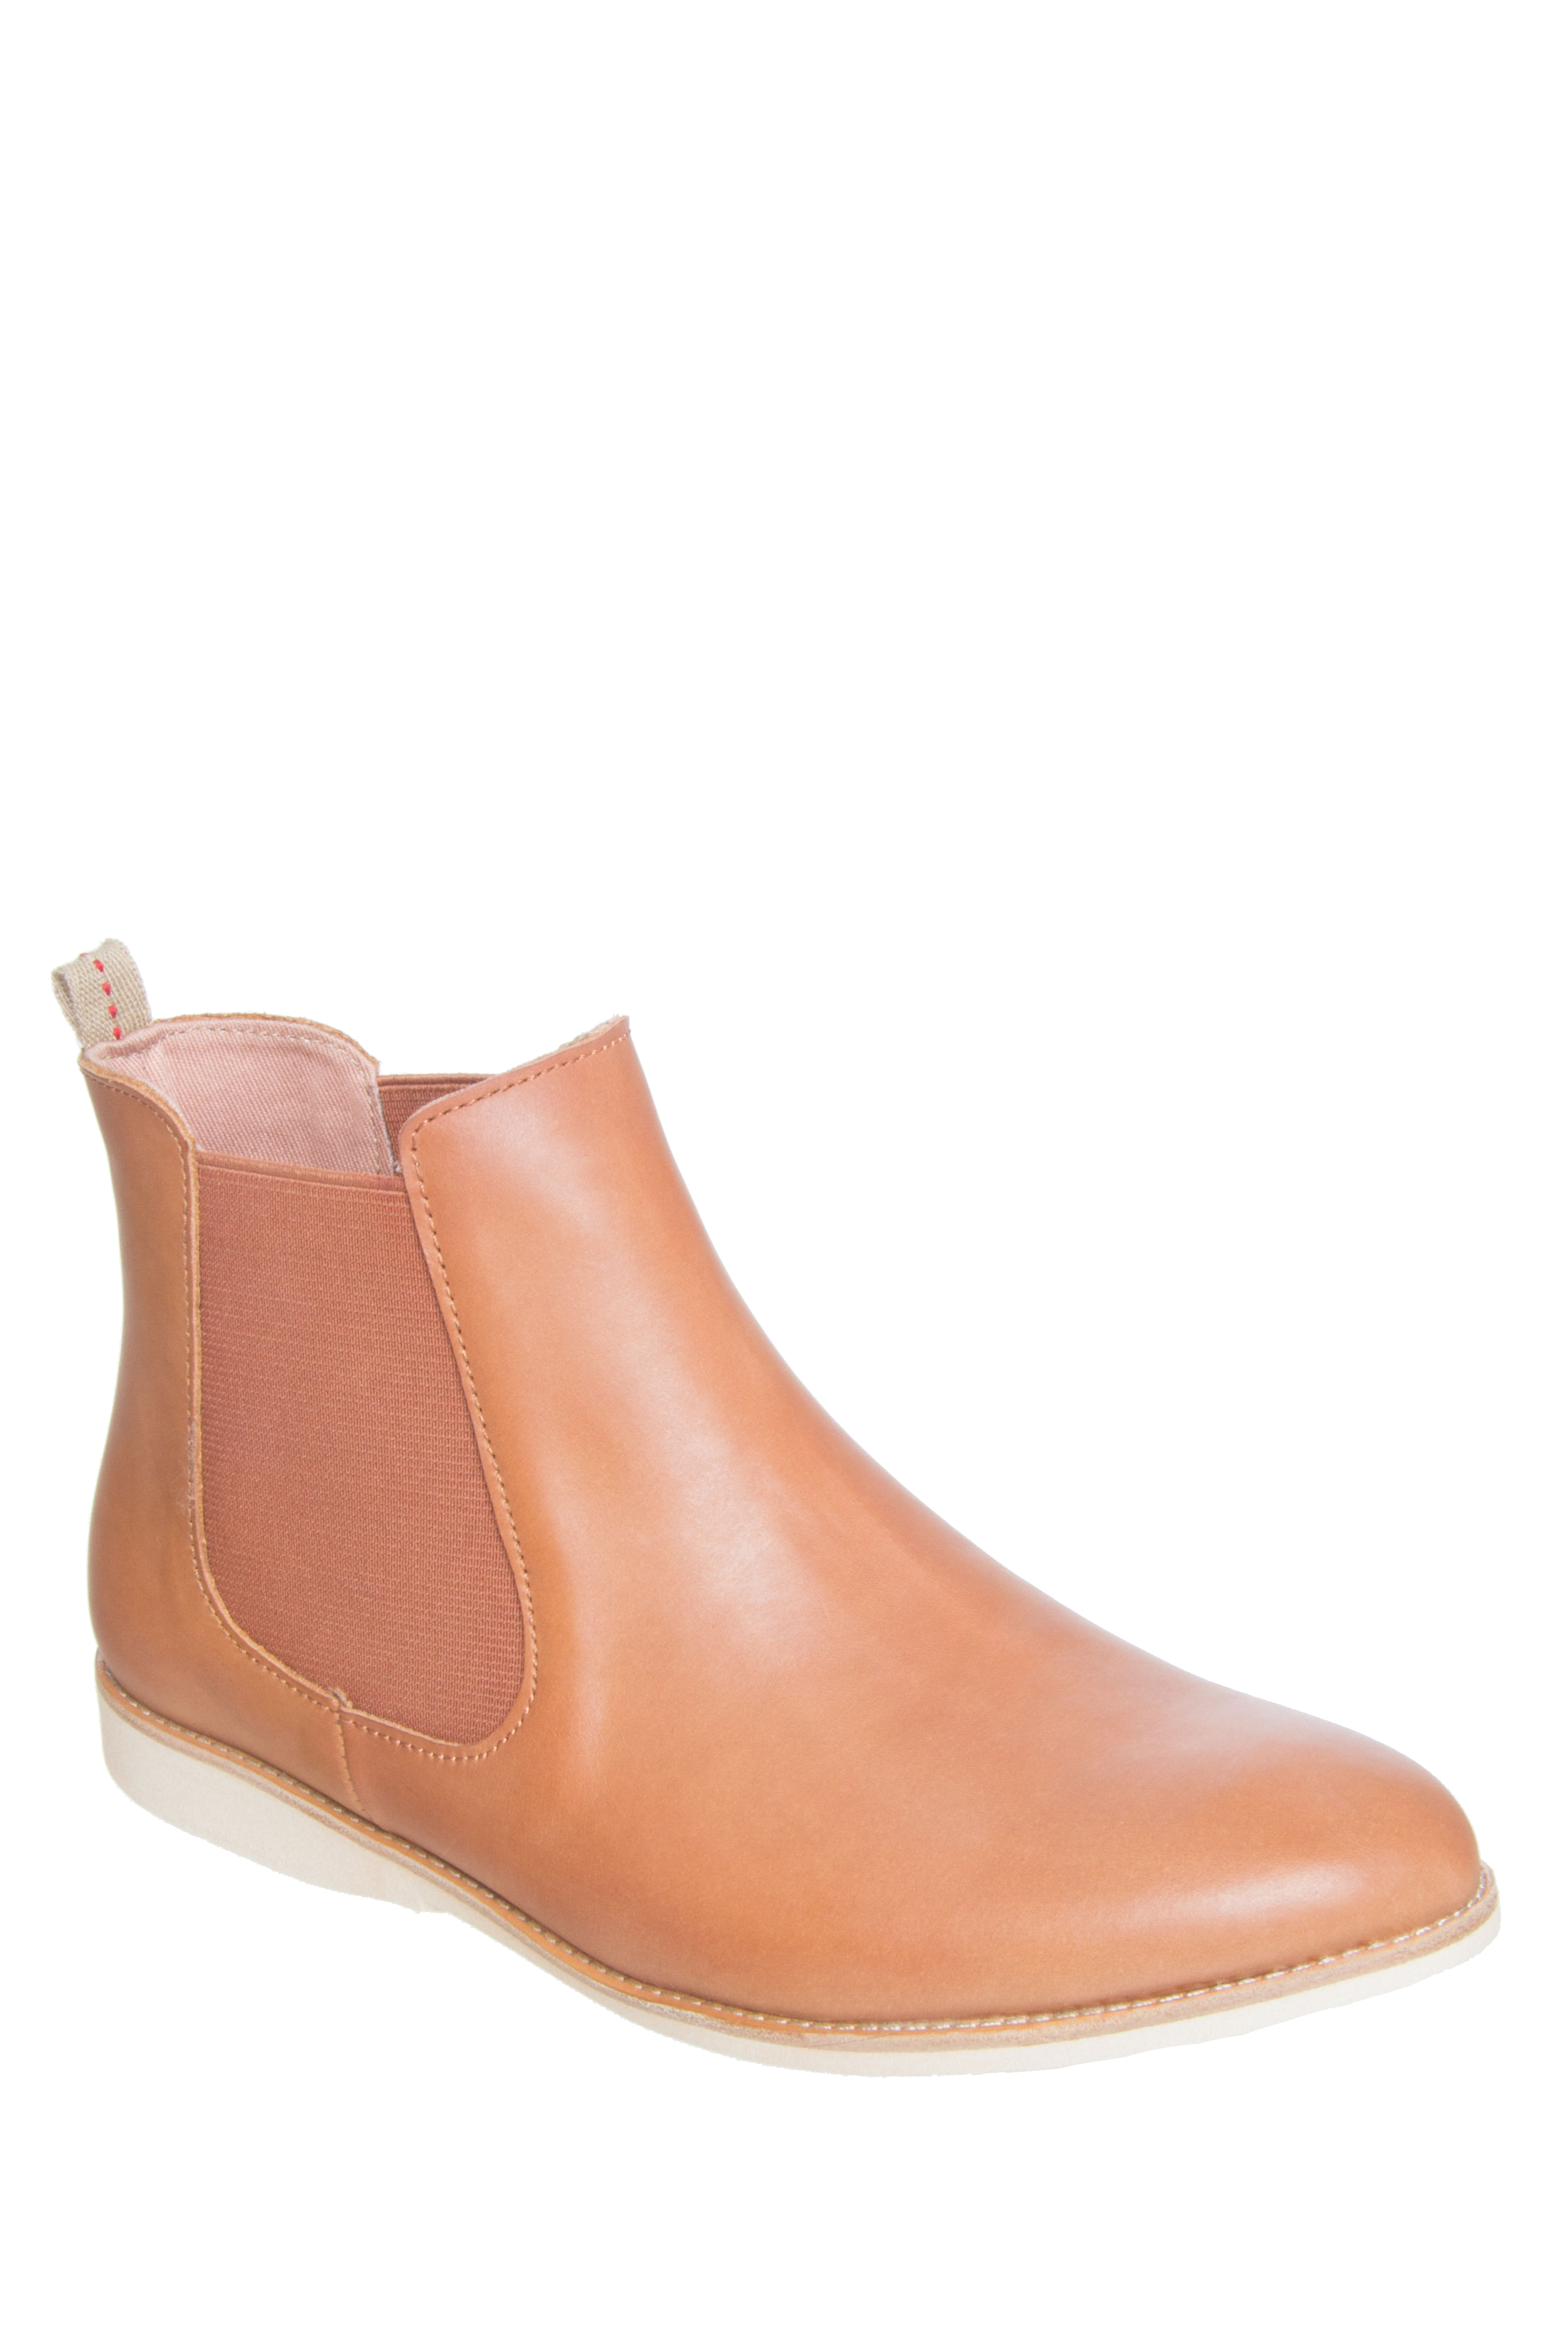 Rollie Nation Unisex Chelsea Low Heel Boots - Cognac